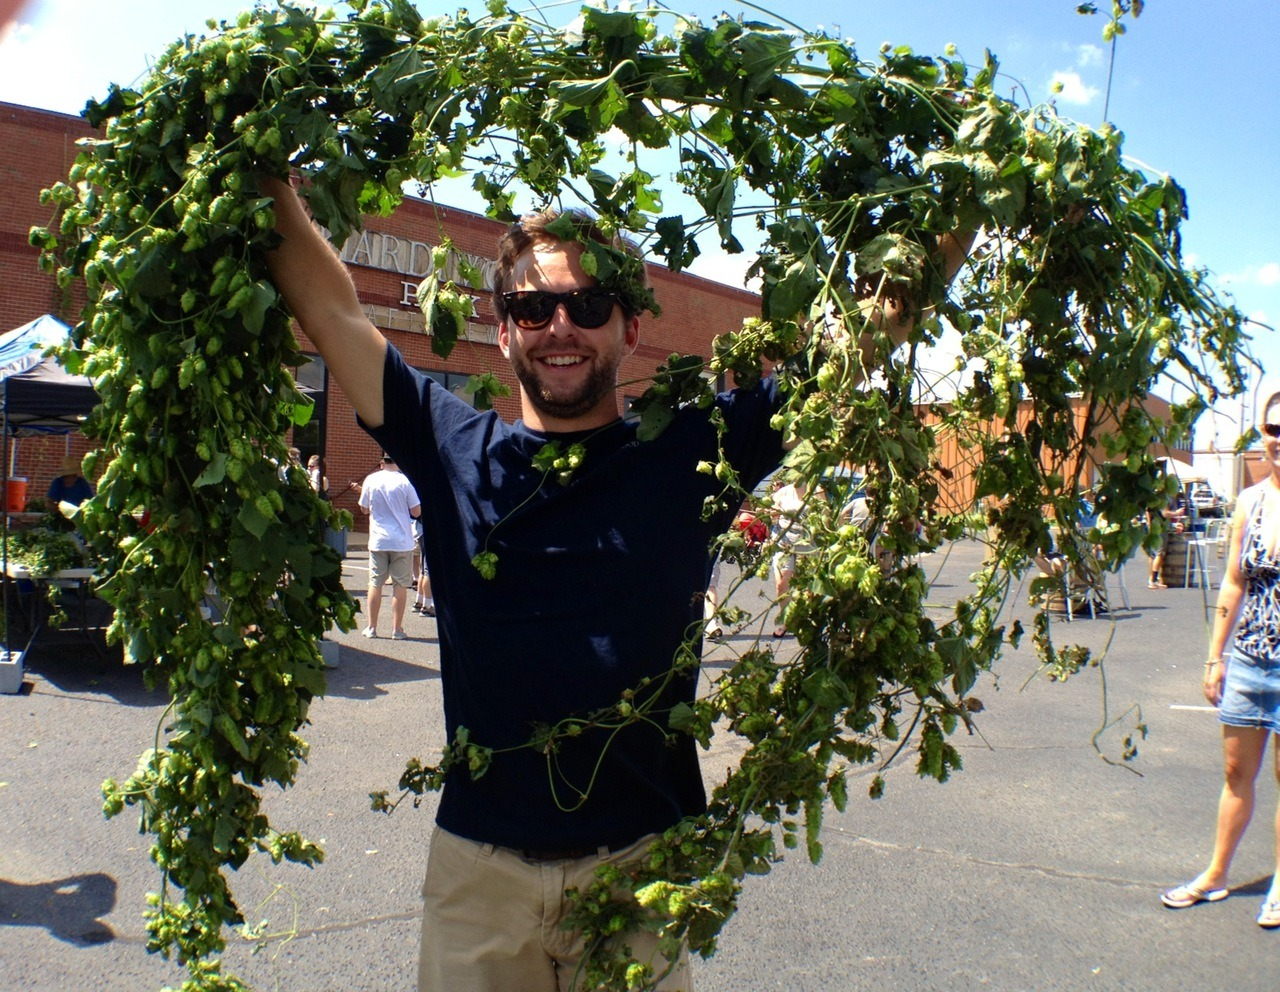 Hardywood's 2012 Hop Harvest was a success! We harvested over 50 lbs of Virginia grown hops for this year's RVA IPA!  Hophead for life.